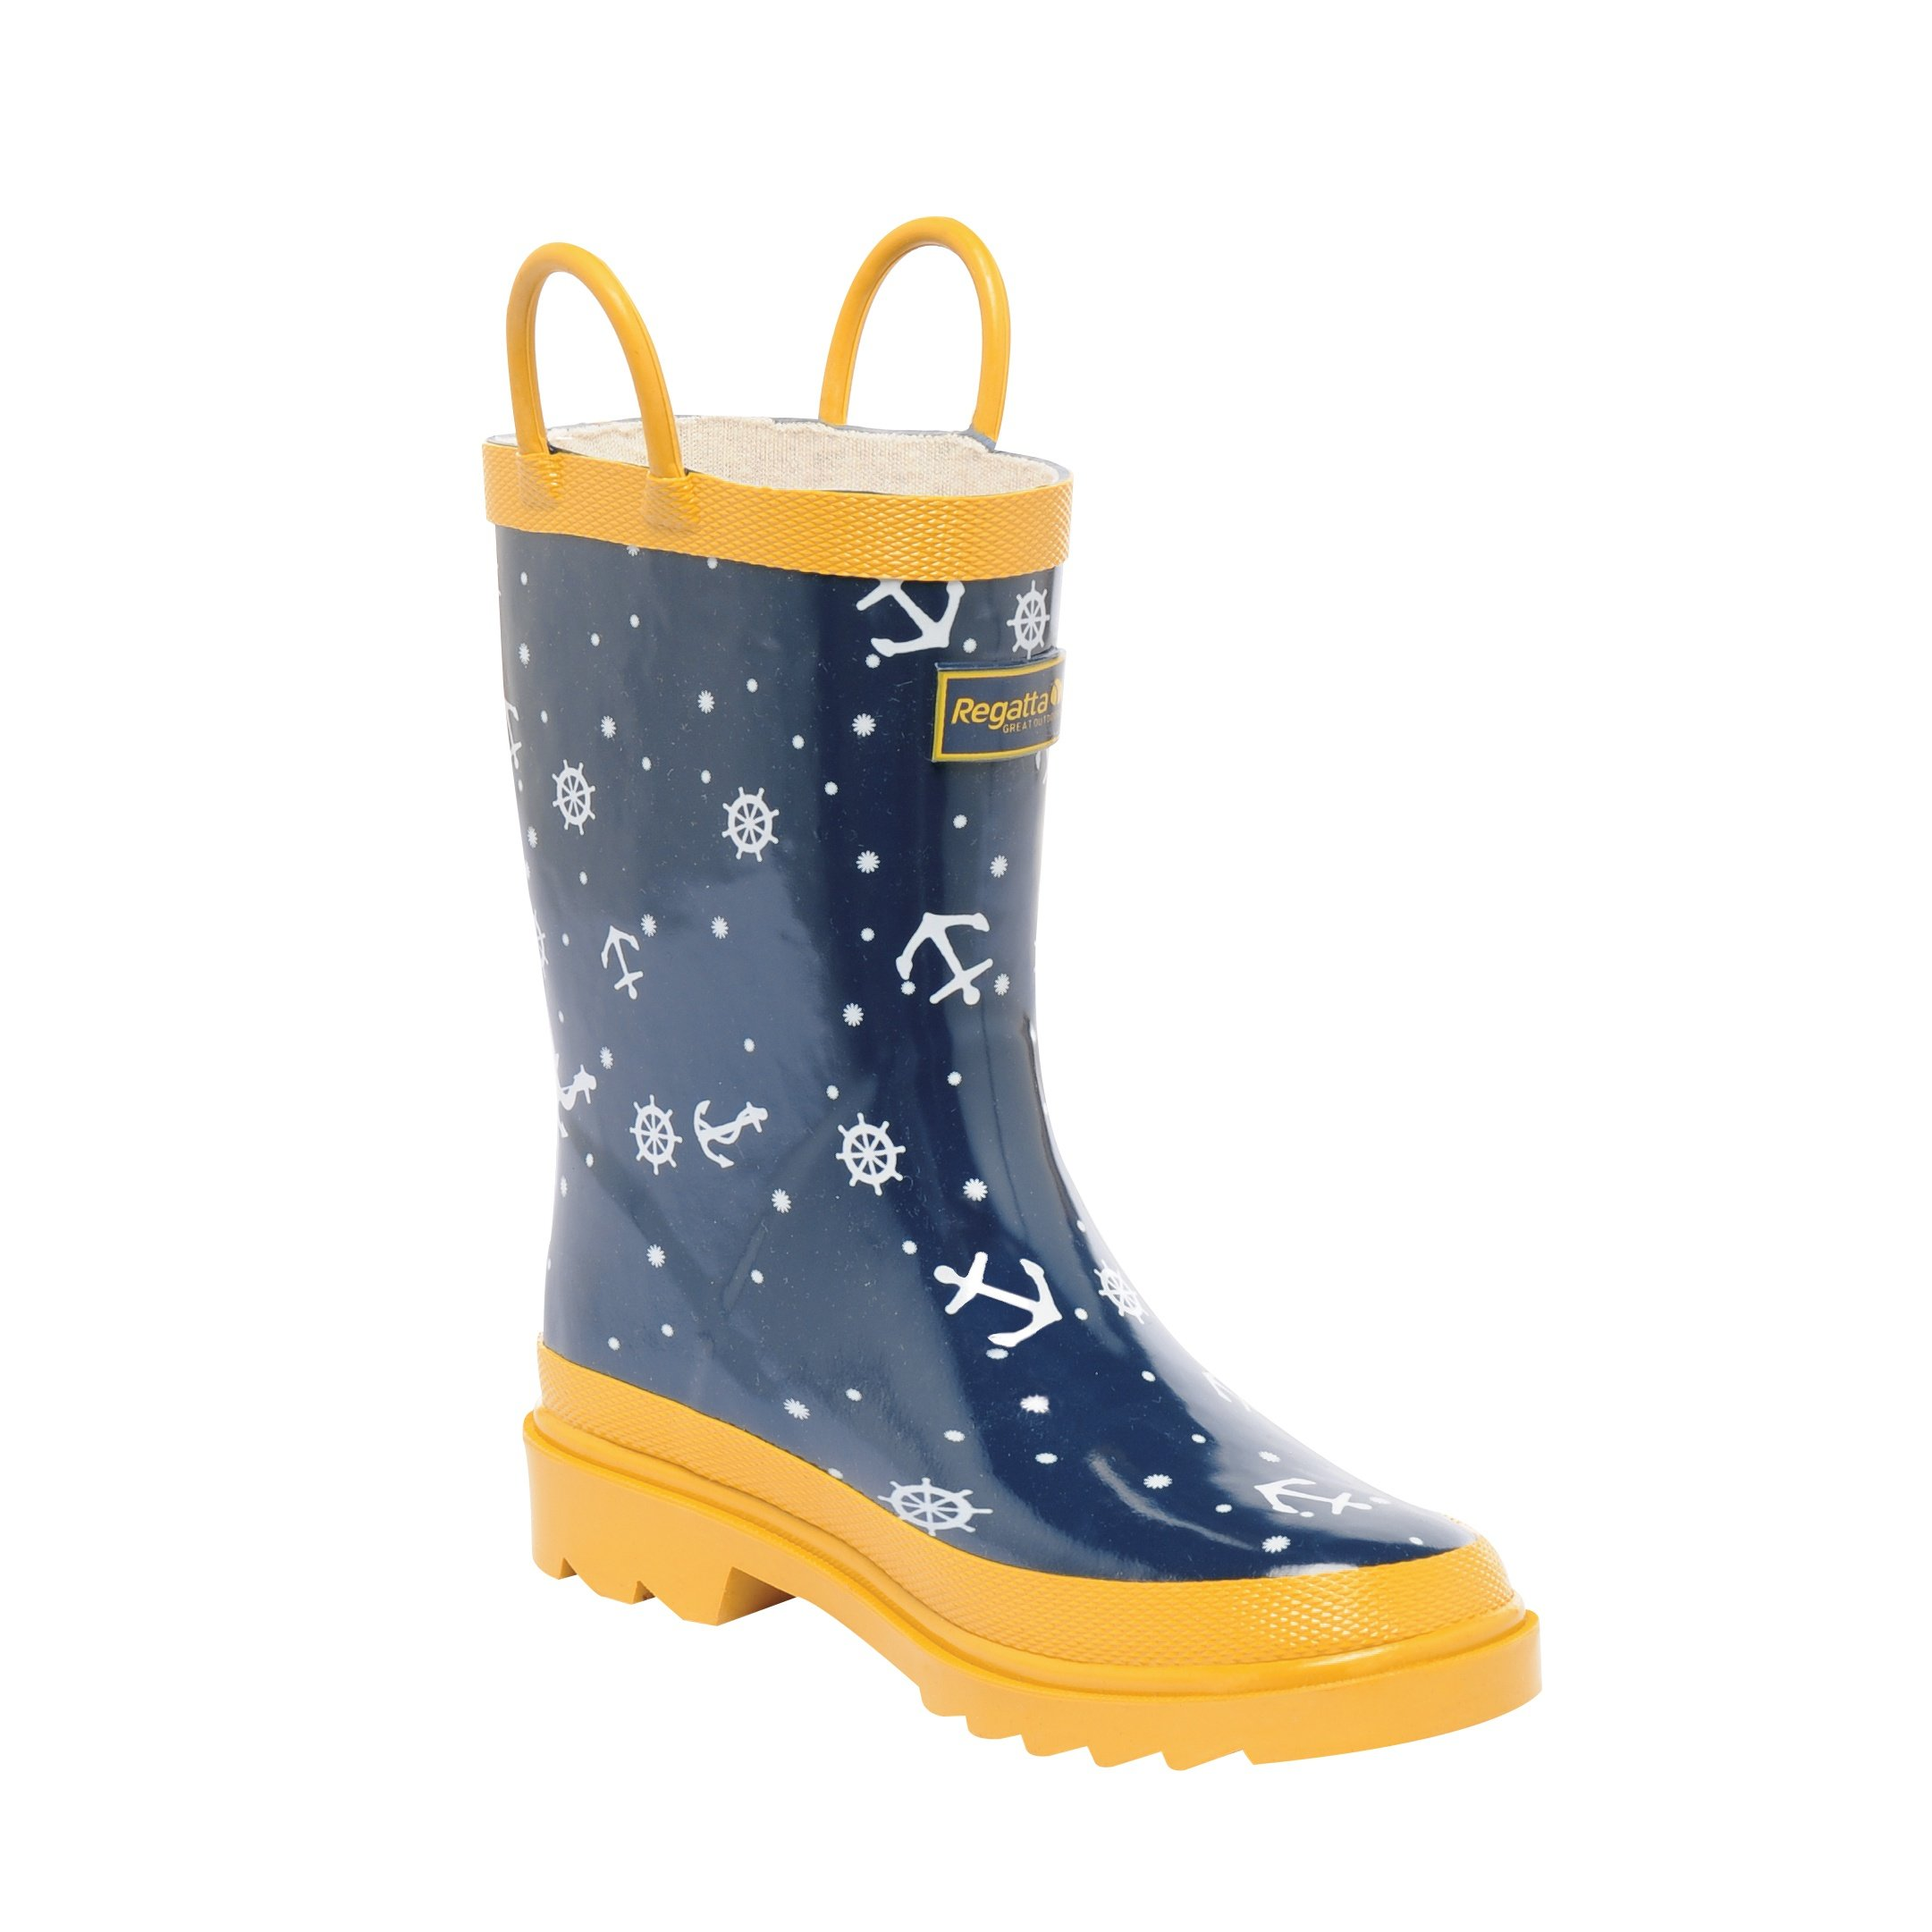 Regatta Great Outdoors Childrens/Kids Minnow Patterned Wellington Boots (US Child 9) (Persian Blue/Rumba Red)